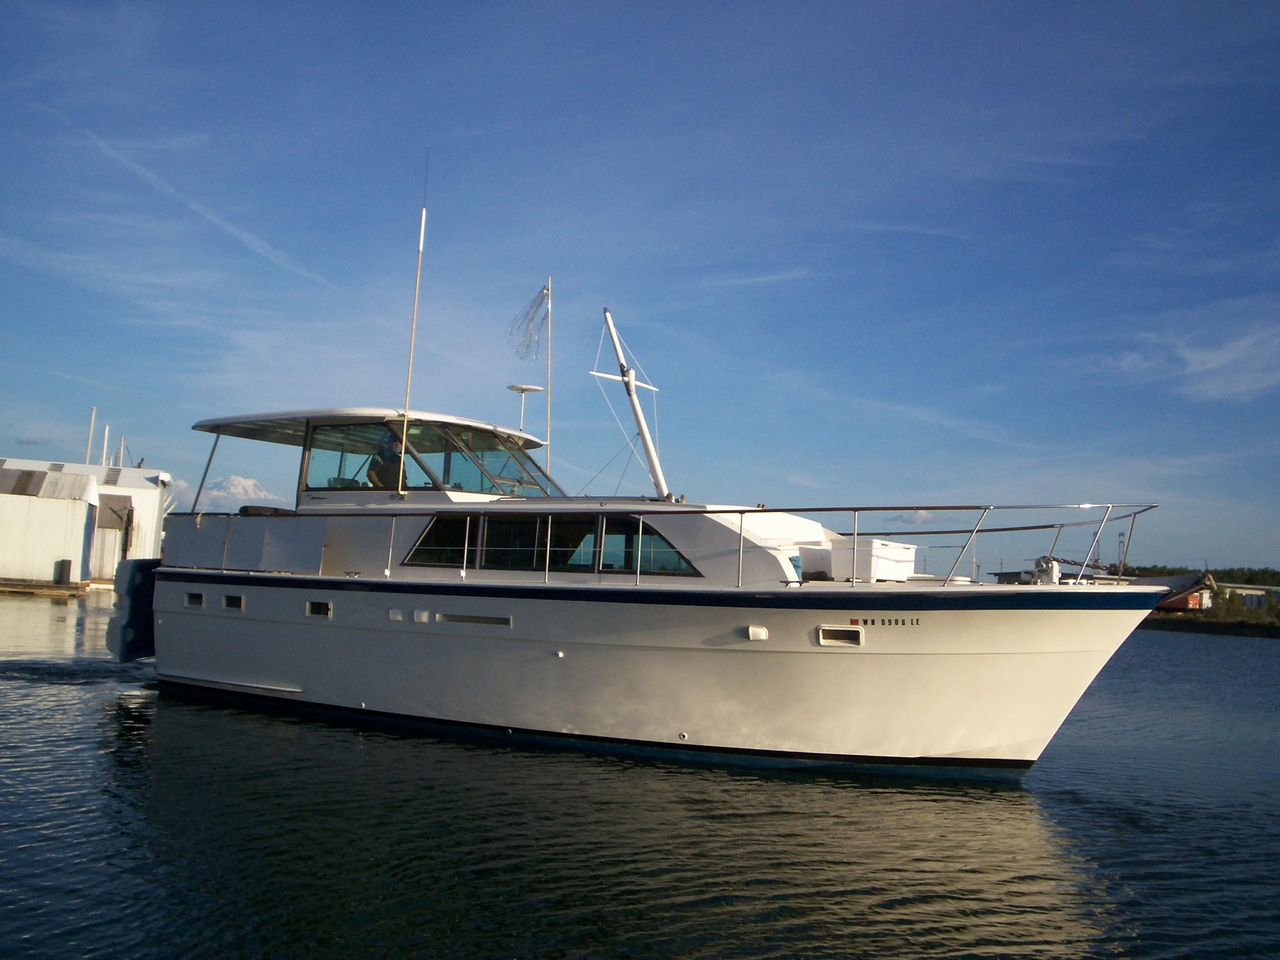 1977 Used Hatteras Flush Deck Motor Yacht For Sale